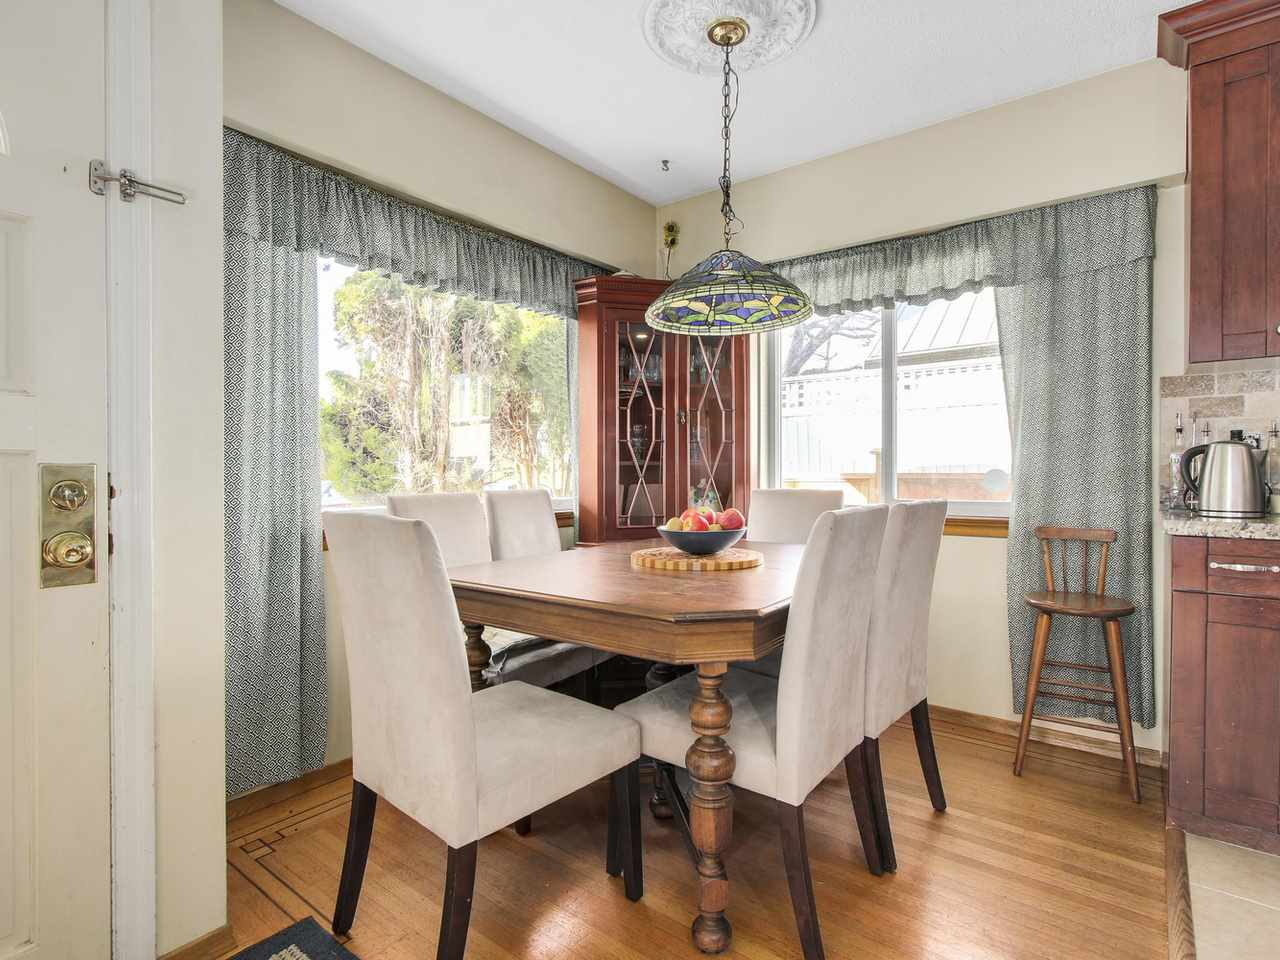 Photo 3: Photos: 1520 MACGOWAN Avenue in North Vancouver: Norgate House for sale : MLS® # R2137032